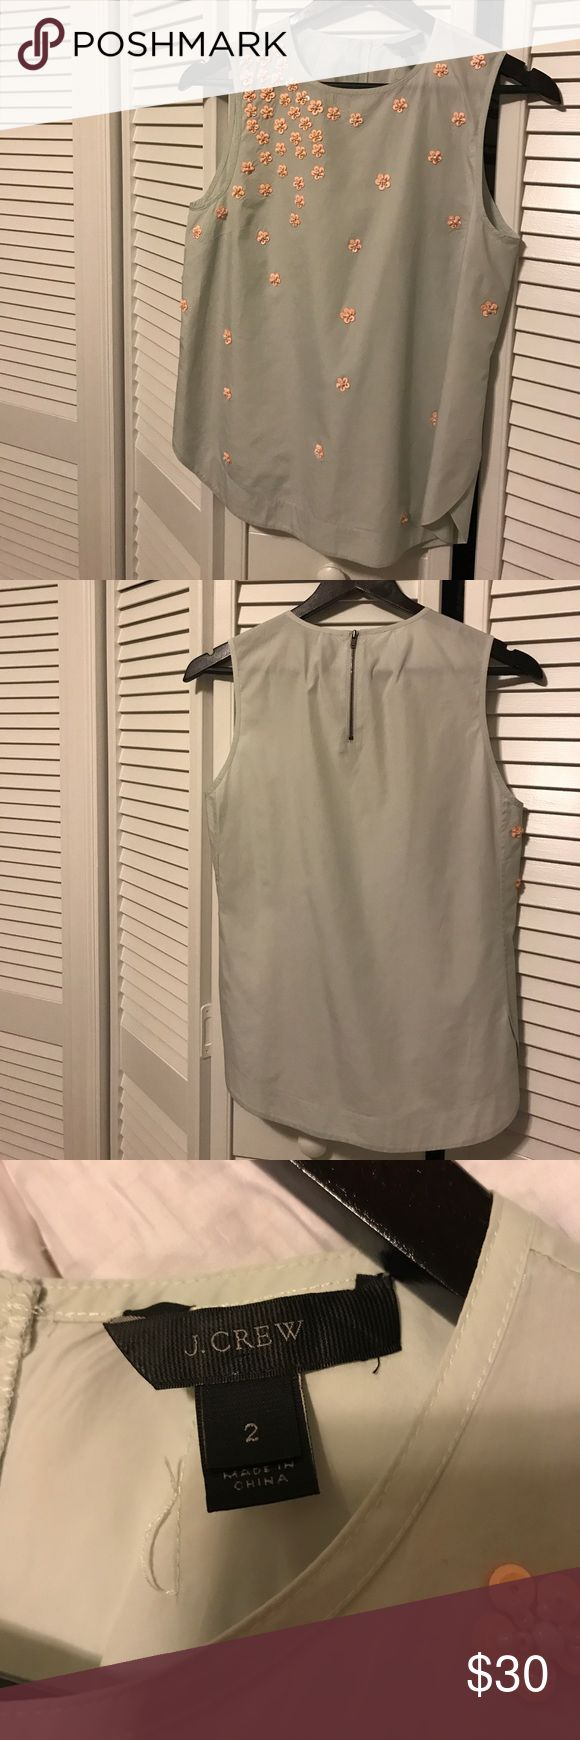 J. Crew. Great Condition. Silk Shell. J. Crew. Dry Cleaned. Sleeveless Silk mint green embellished with white seed pearls & peach sequins. Beautiful! Bronze Sipper in back. Semi-Fitted. Has a little Lycra for extra give. Can be worn with tailored skirt, pants, or casual with jeans & blazer. Dry Clean Only. J. Crew Tops Blouses